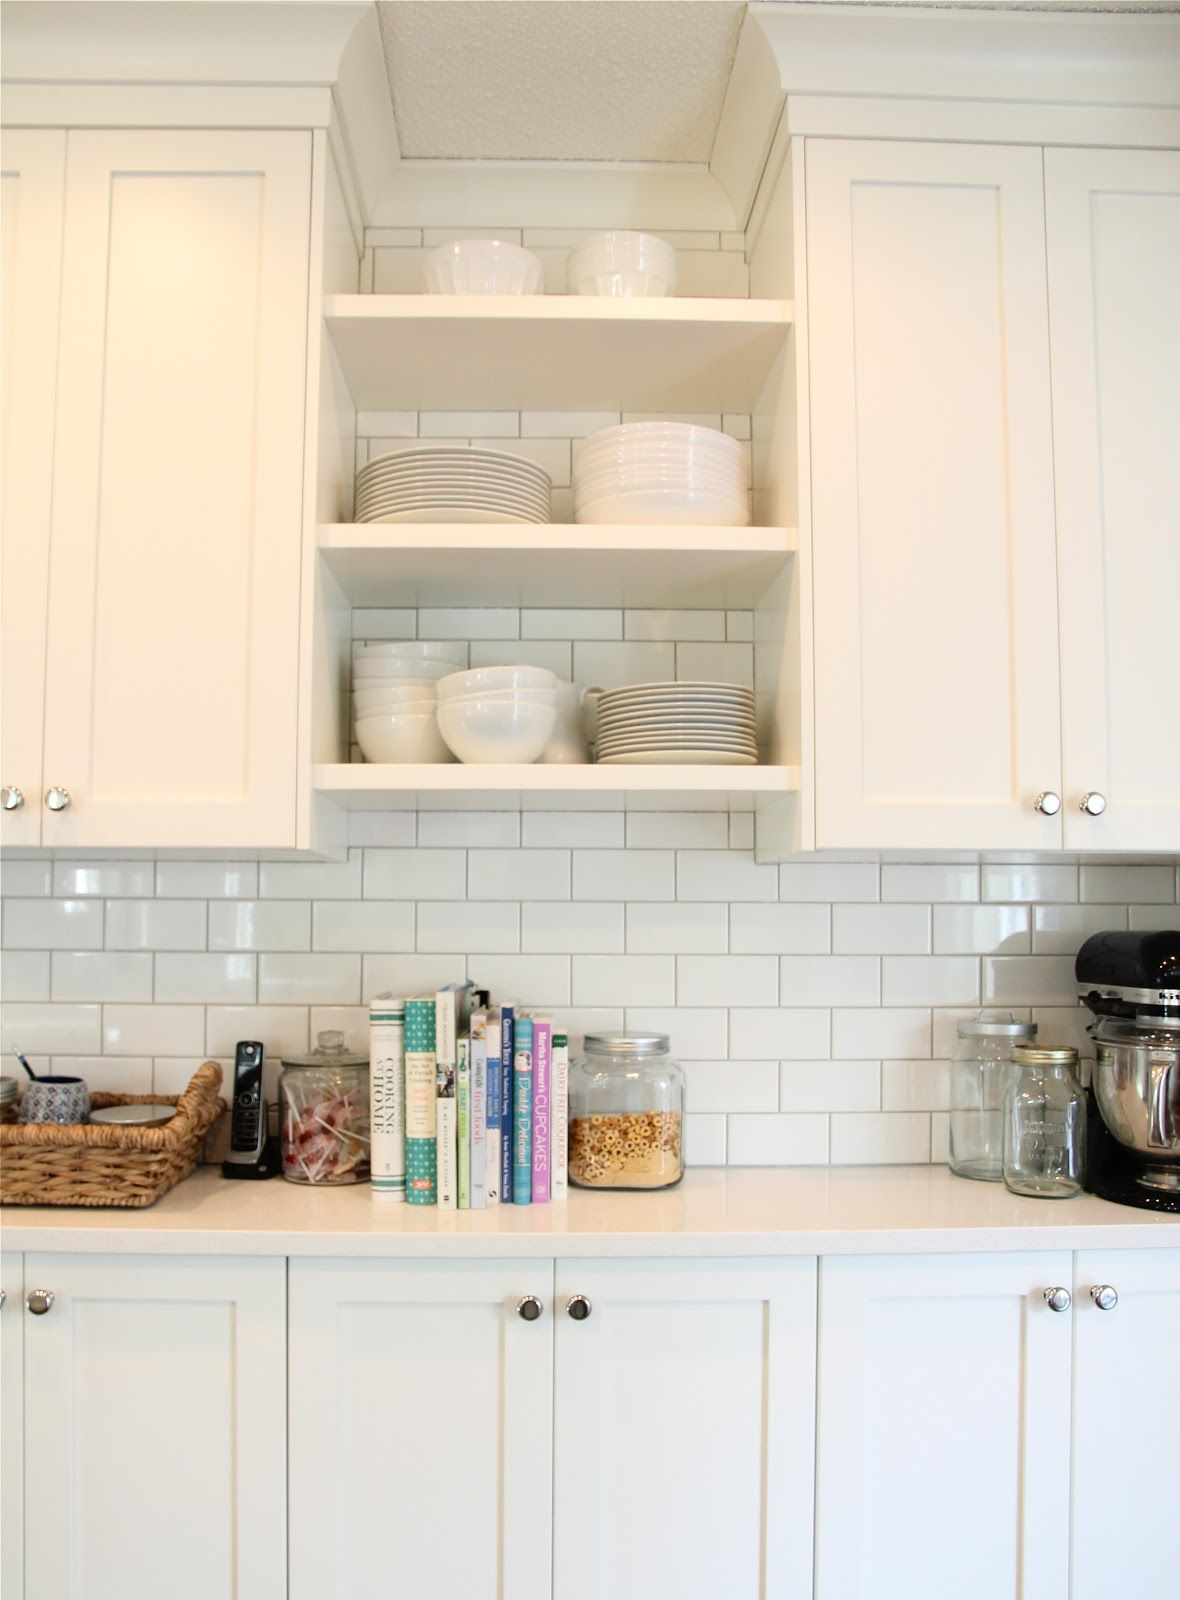 Cloud white cabinets light gray grout white subway tiles for Off the shelf kitchen units